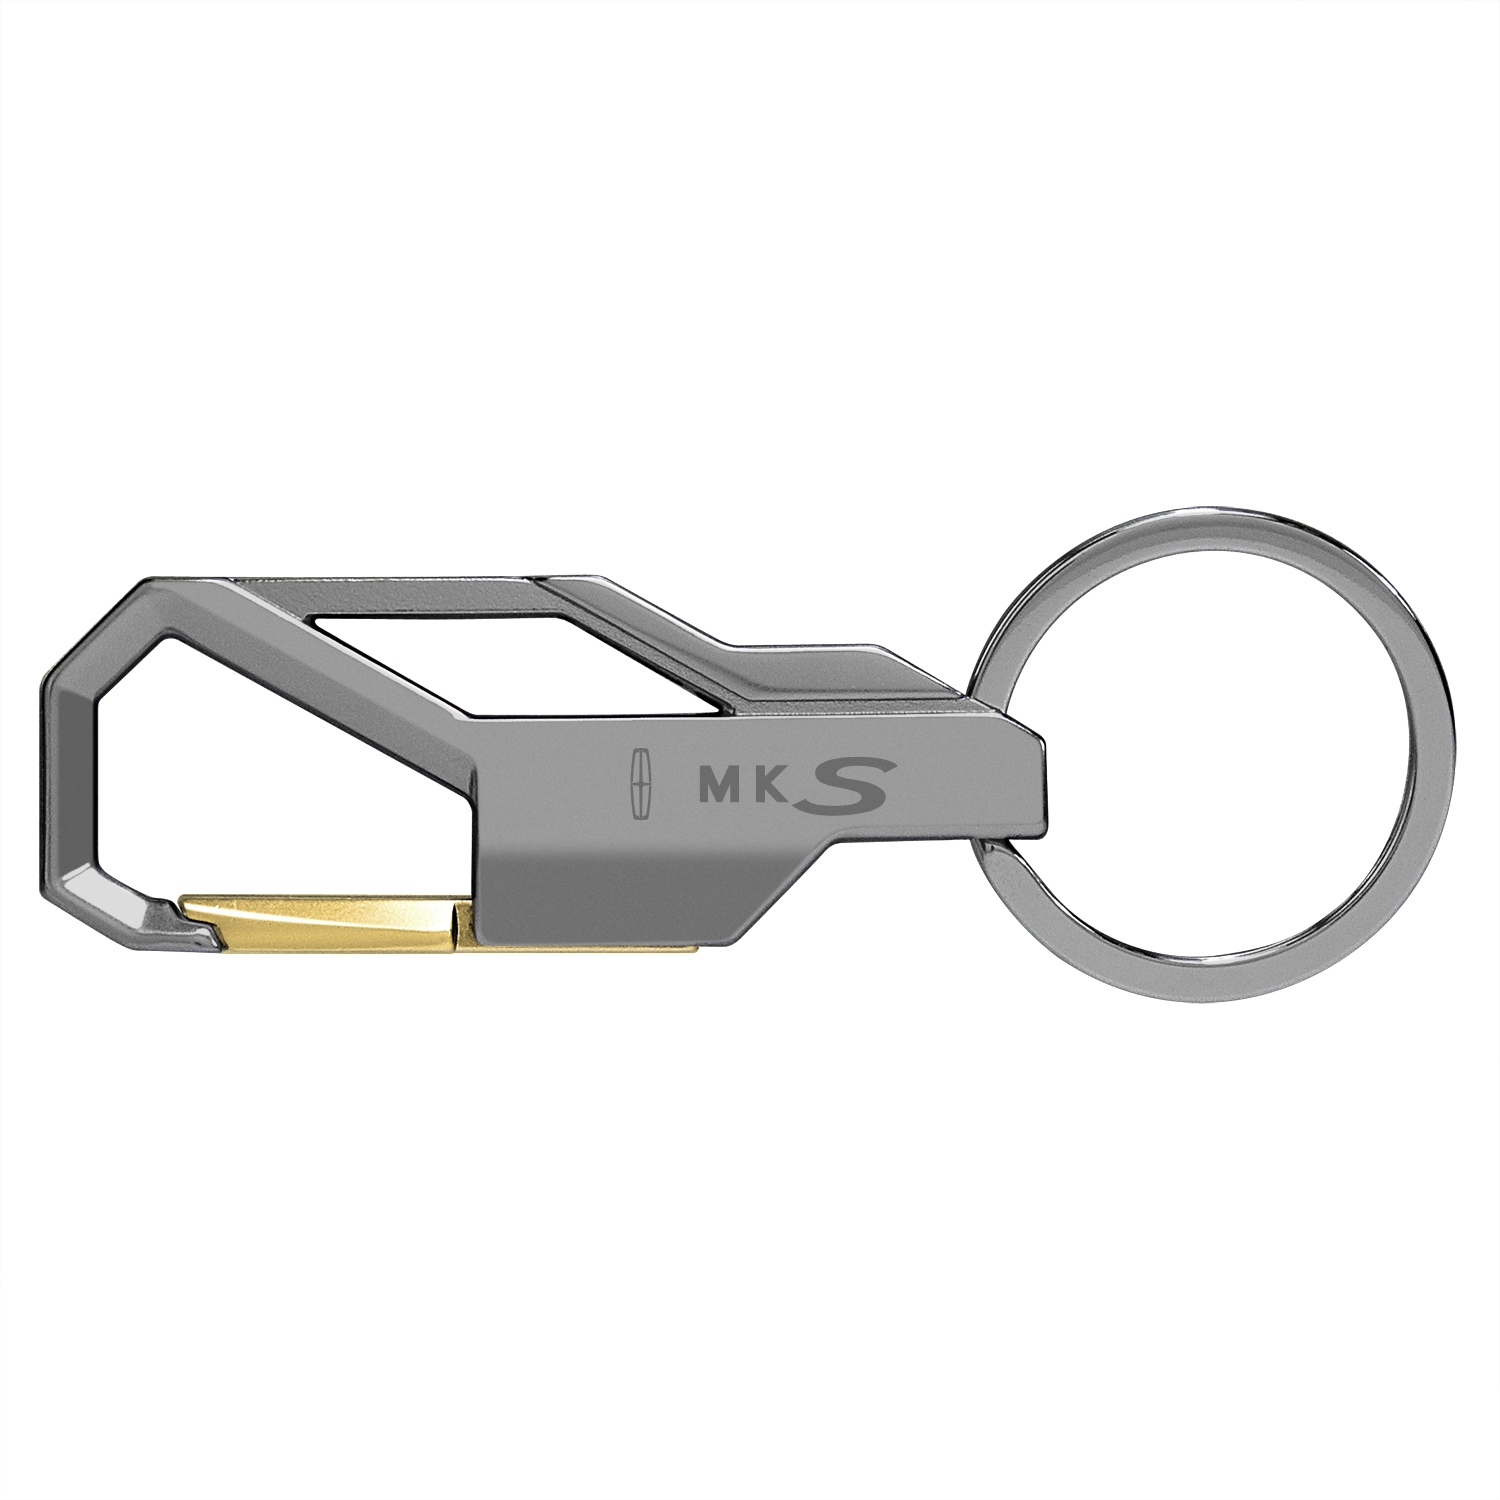 Lincoln MKS Gunmetal Gray Snap Hook Metal Key Chain